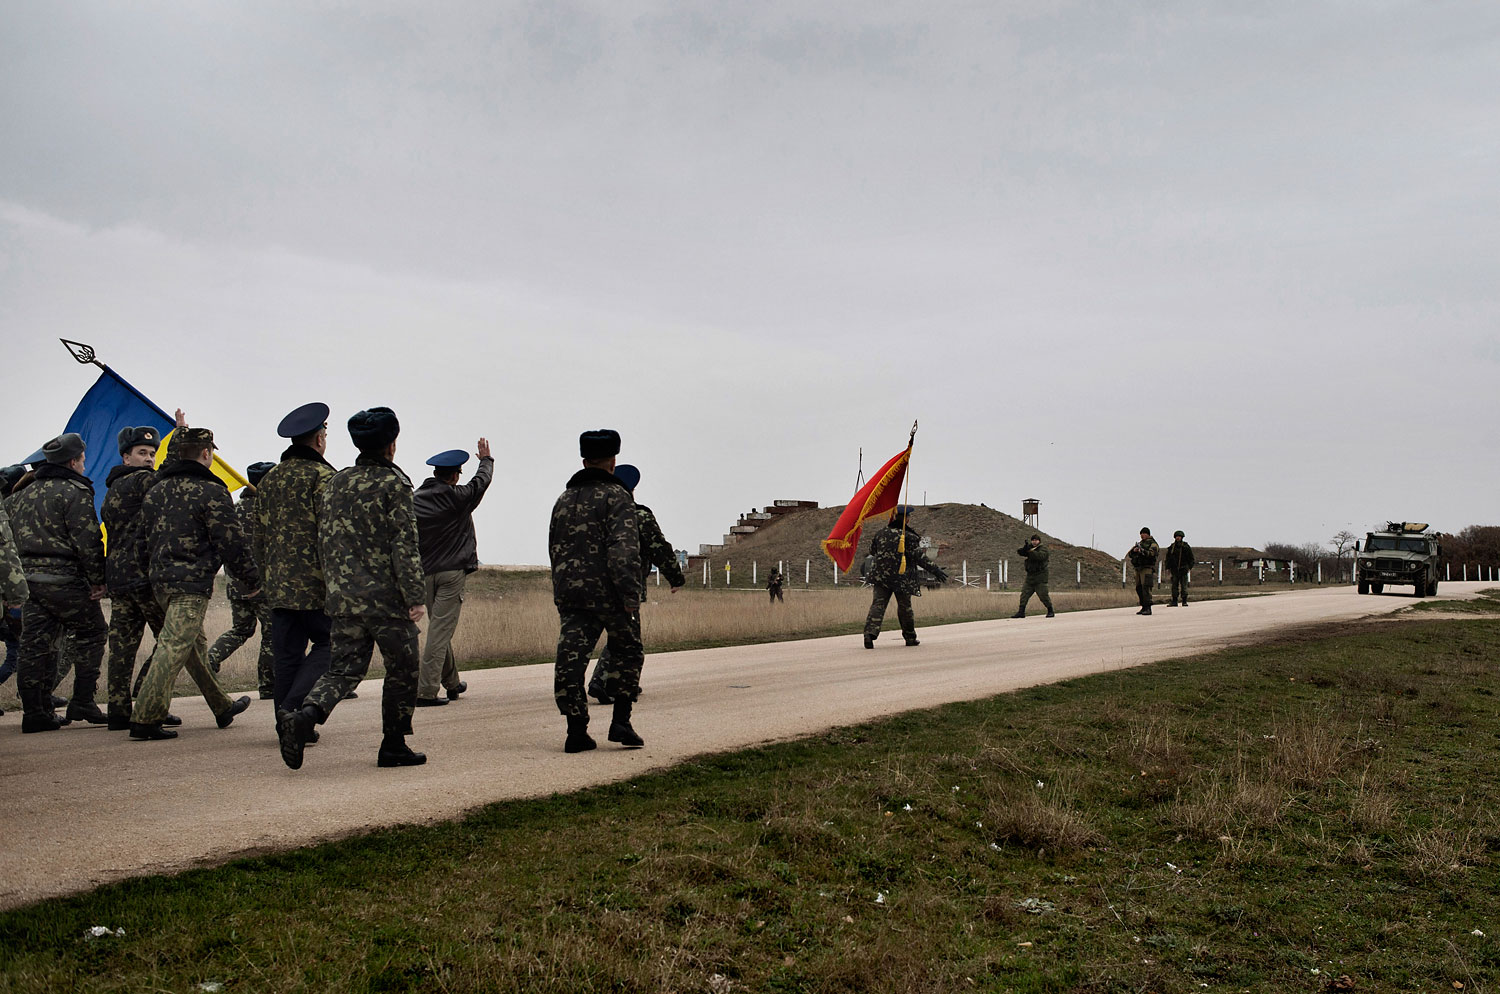 Unarmed Ukrainian soldiers approach Russian positions on the perimeter of the contested Belbek air force base in Crimea, March 4, 2014.